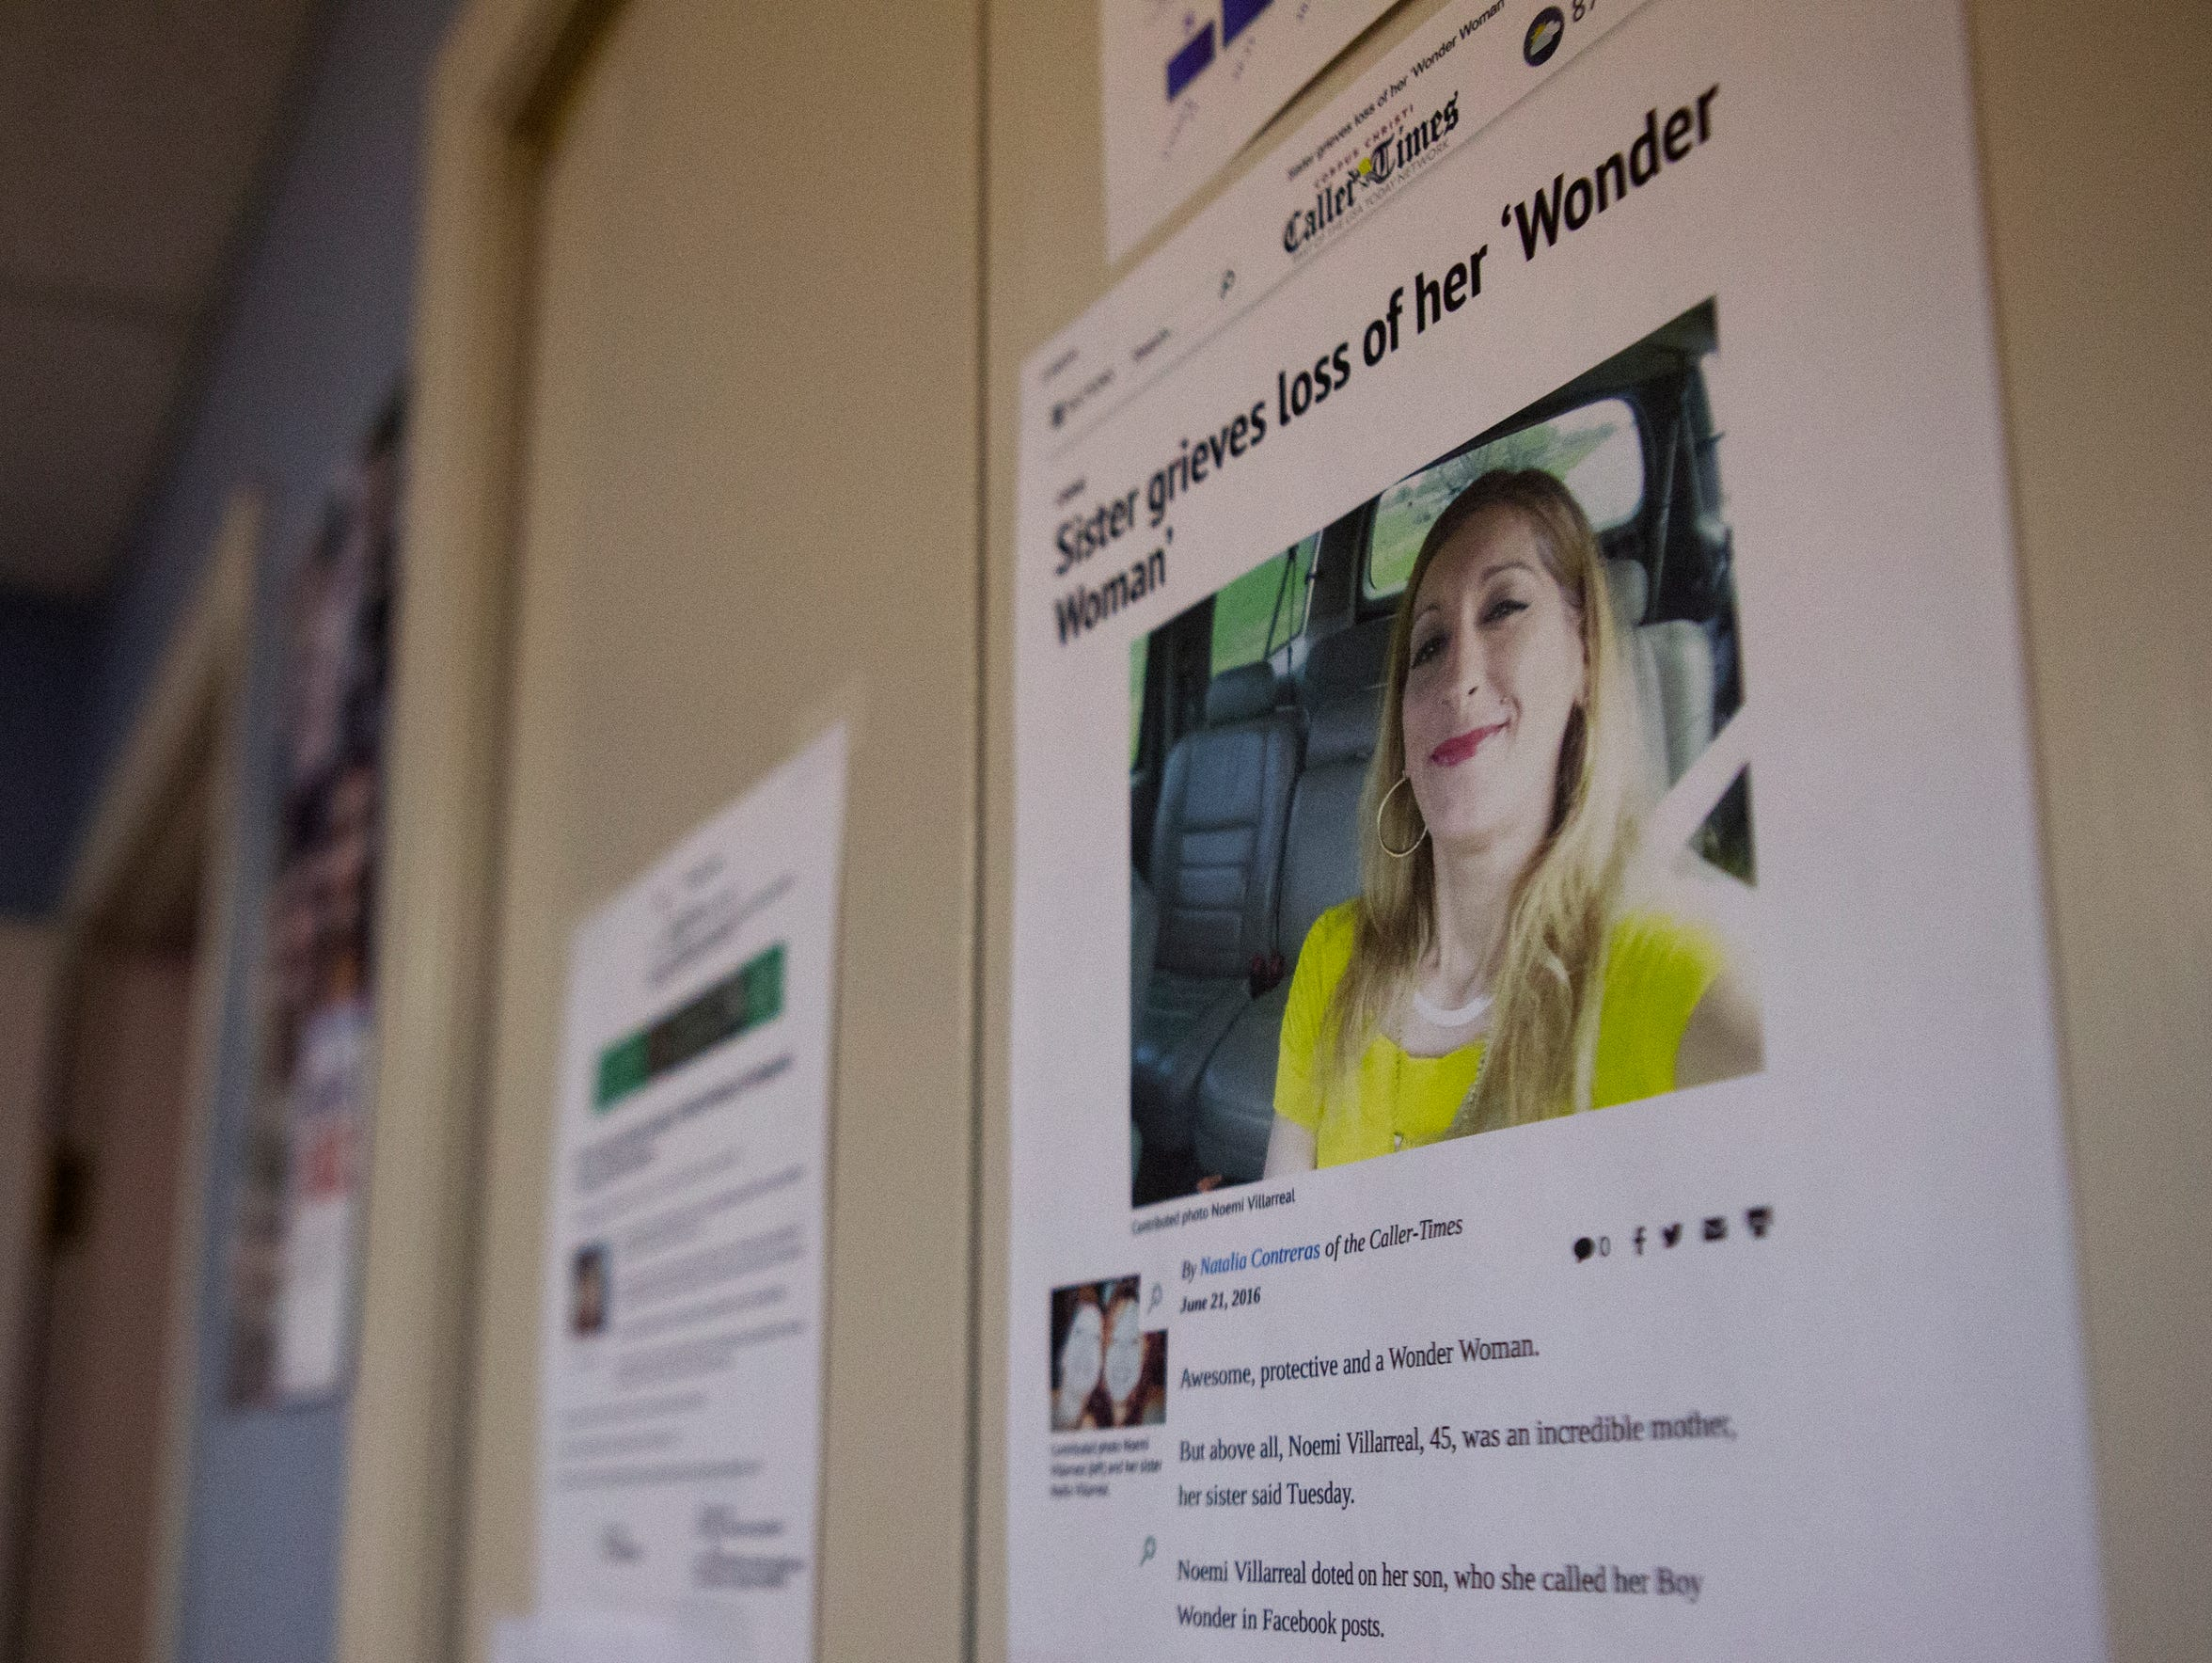 An article about the murder of Noemi Villarreal is